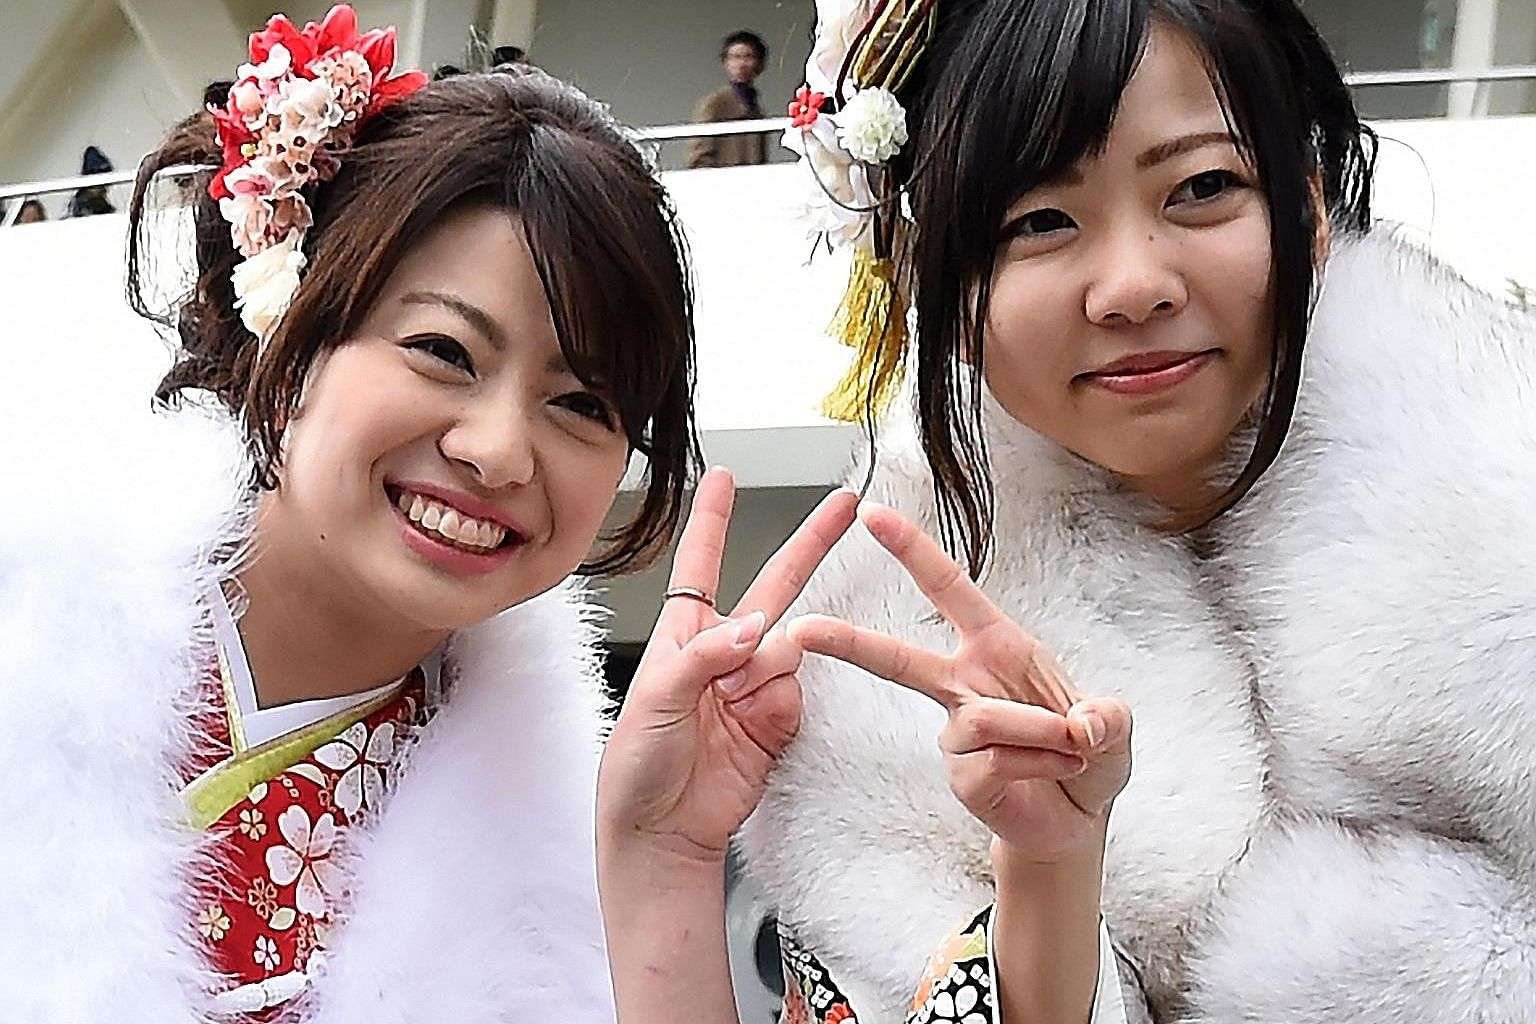 """Flashing the """"peace"""" sign in photos could lead to fingerprint data being stolen, according to Japan's National Institute of Informatics."""